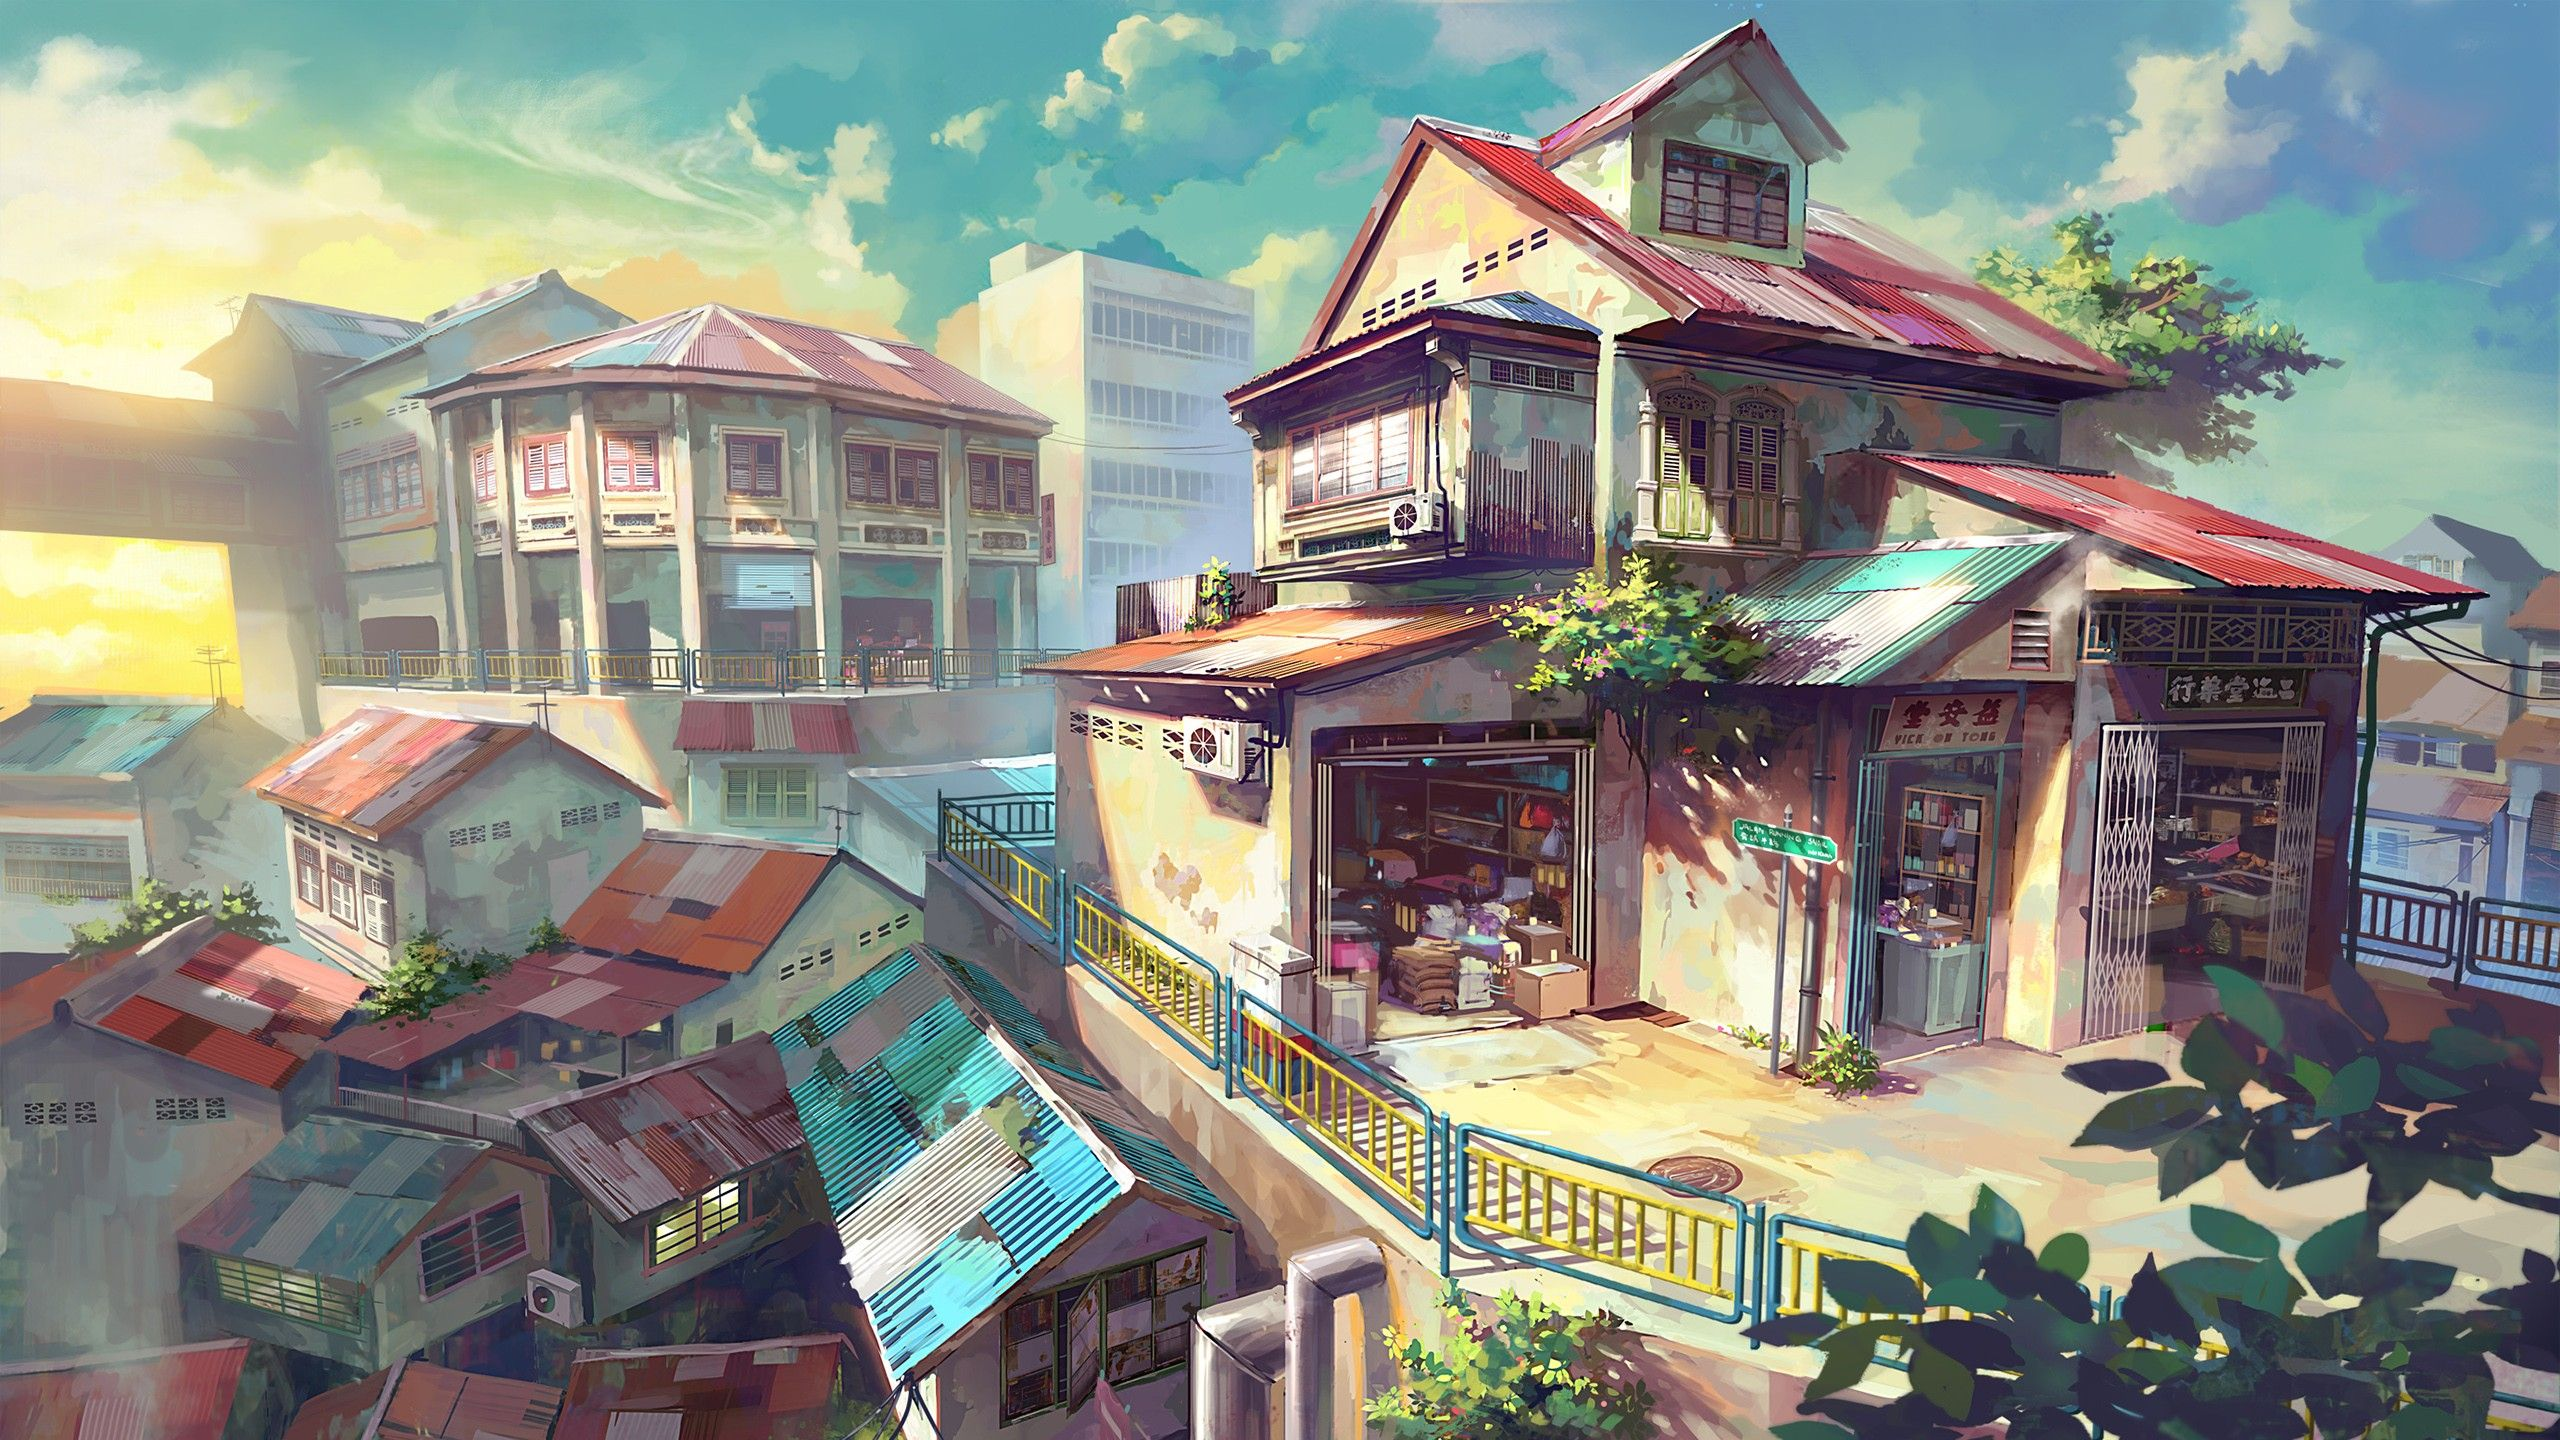 Artwork Cityscapes Clouds Houses Shop Wallpaper 2911873 Wallbase Cc Anime Scenery Wallpaper Anime City Anime Scenery